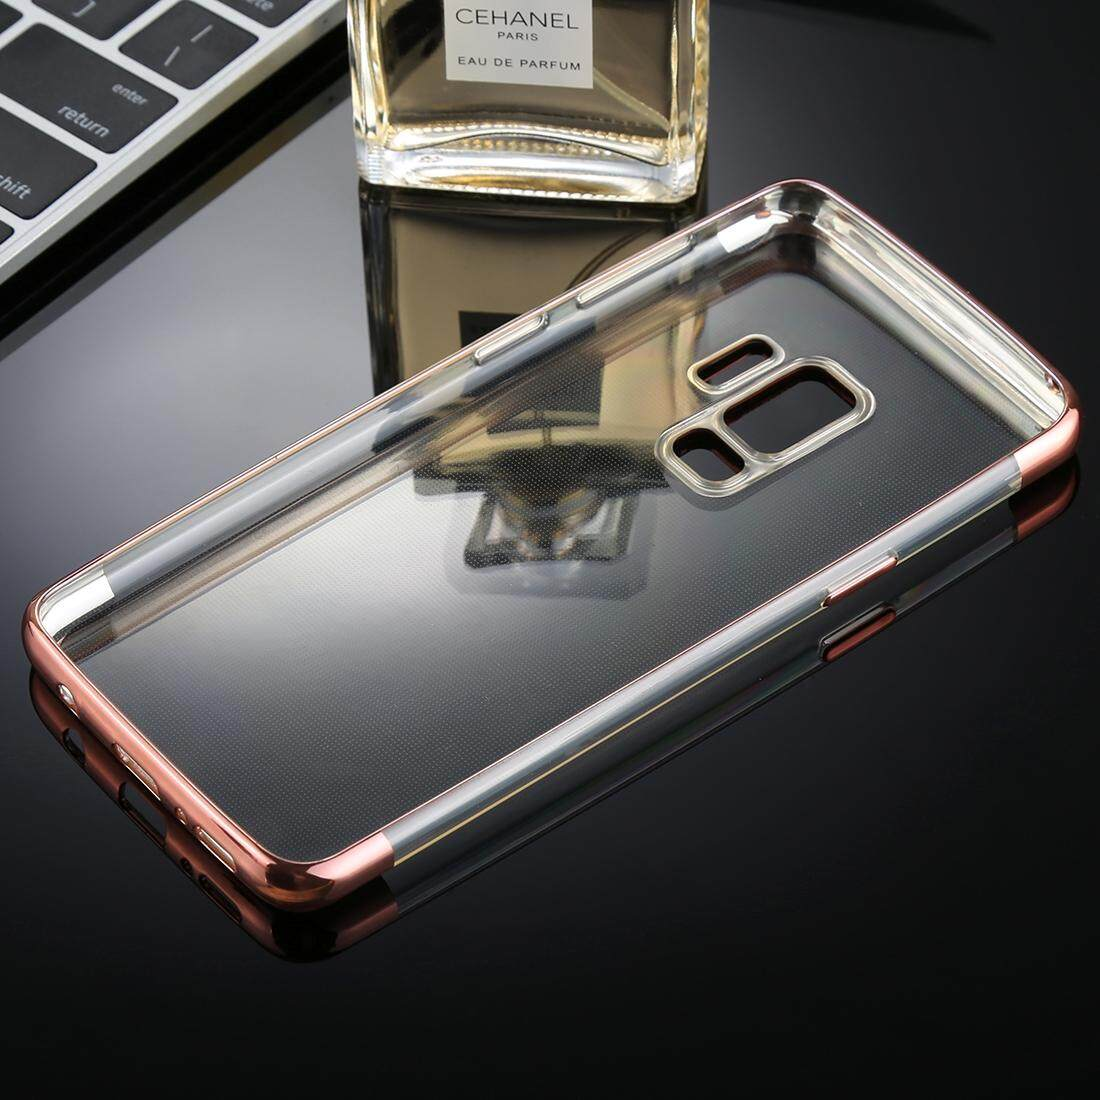 Gantungan kail stainless 12cm huruf S. Source. ' Detail Gambar For Galaxy S9+ Three